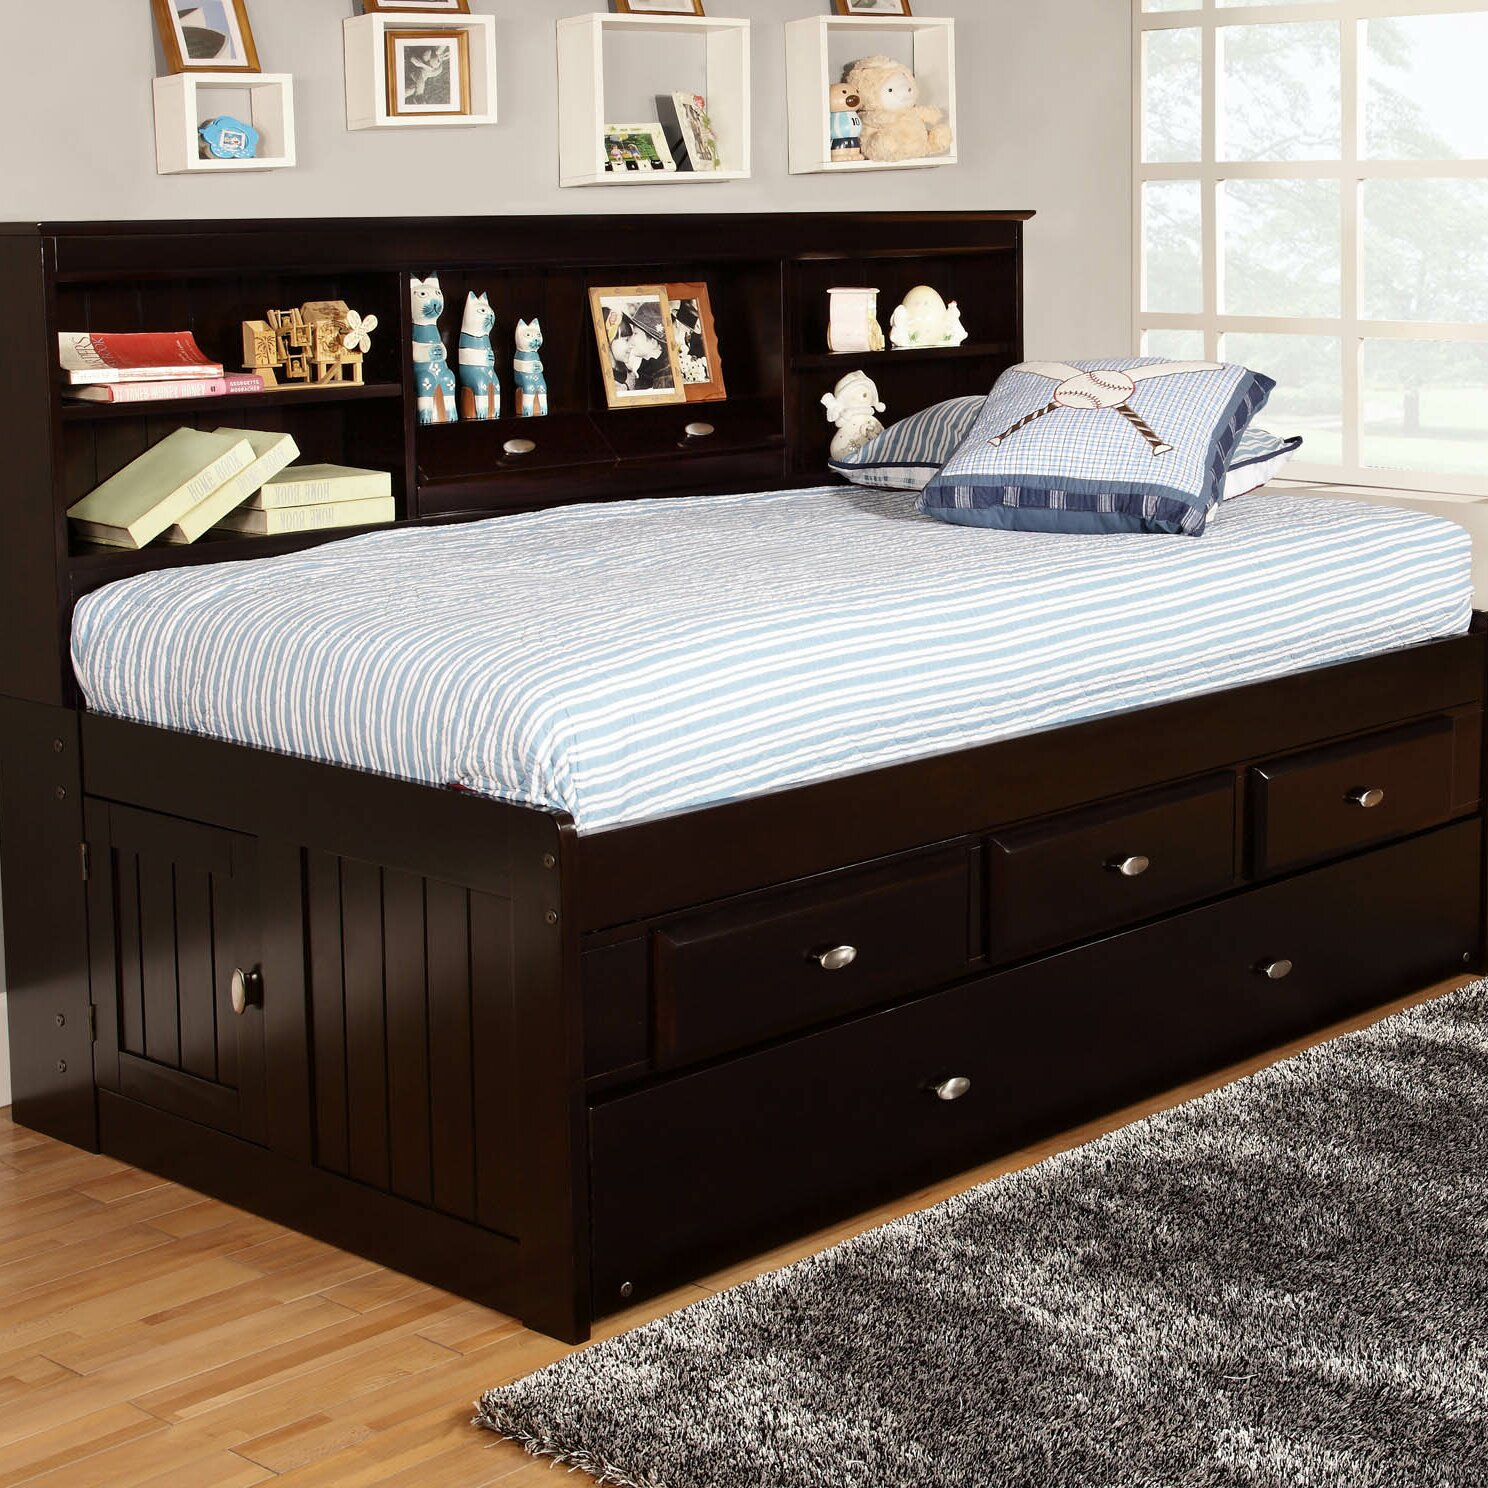 Discovery world furniture captian 39 s bed with trundle - Wayfair childrens bedroom furniture ...